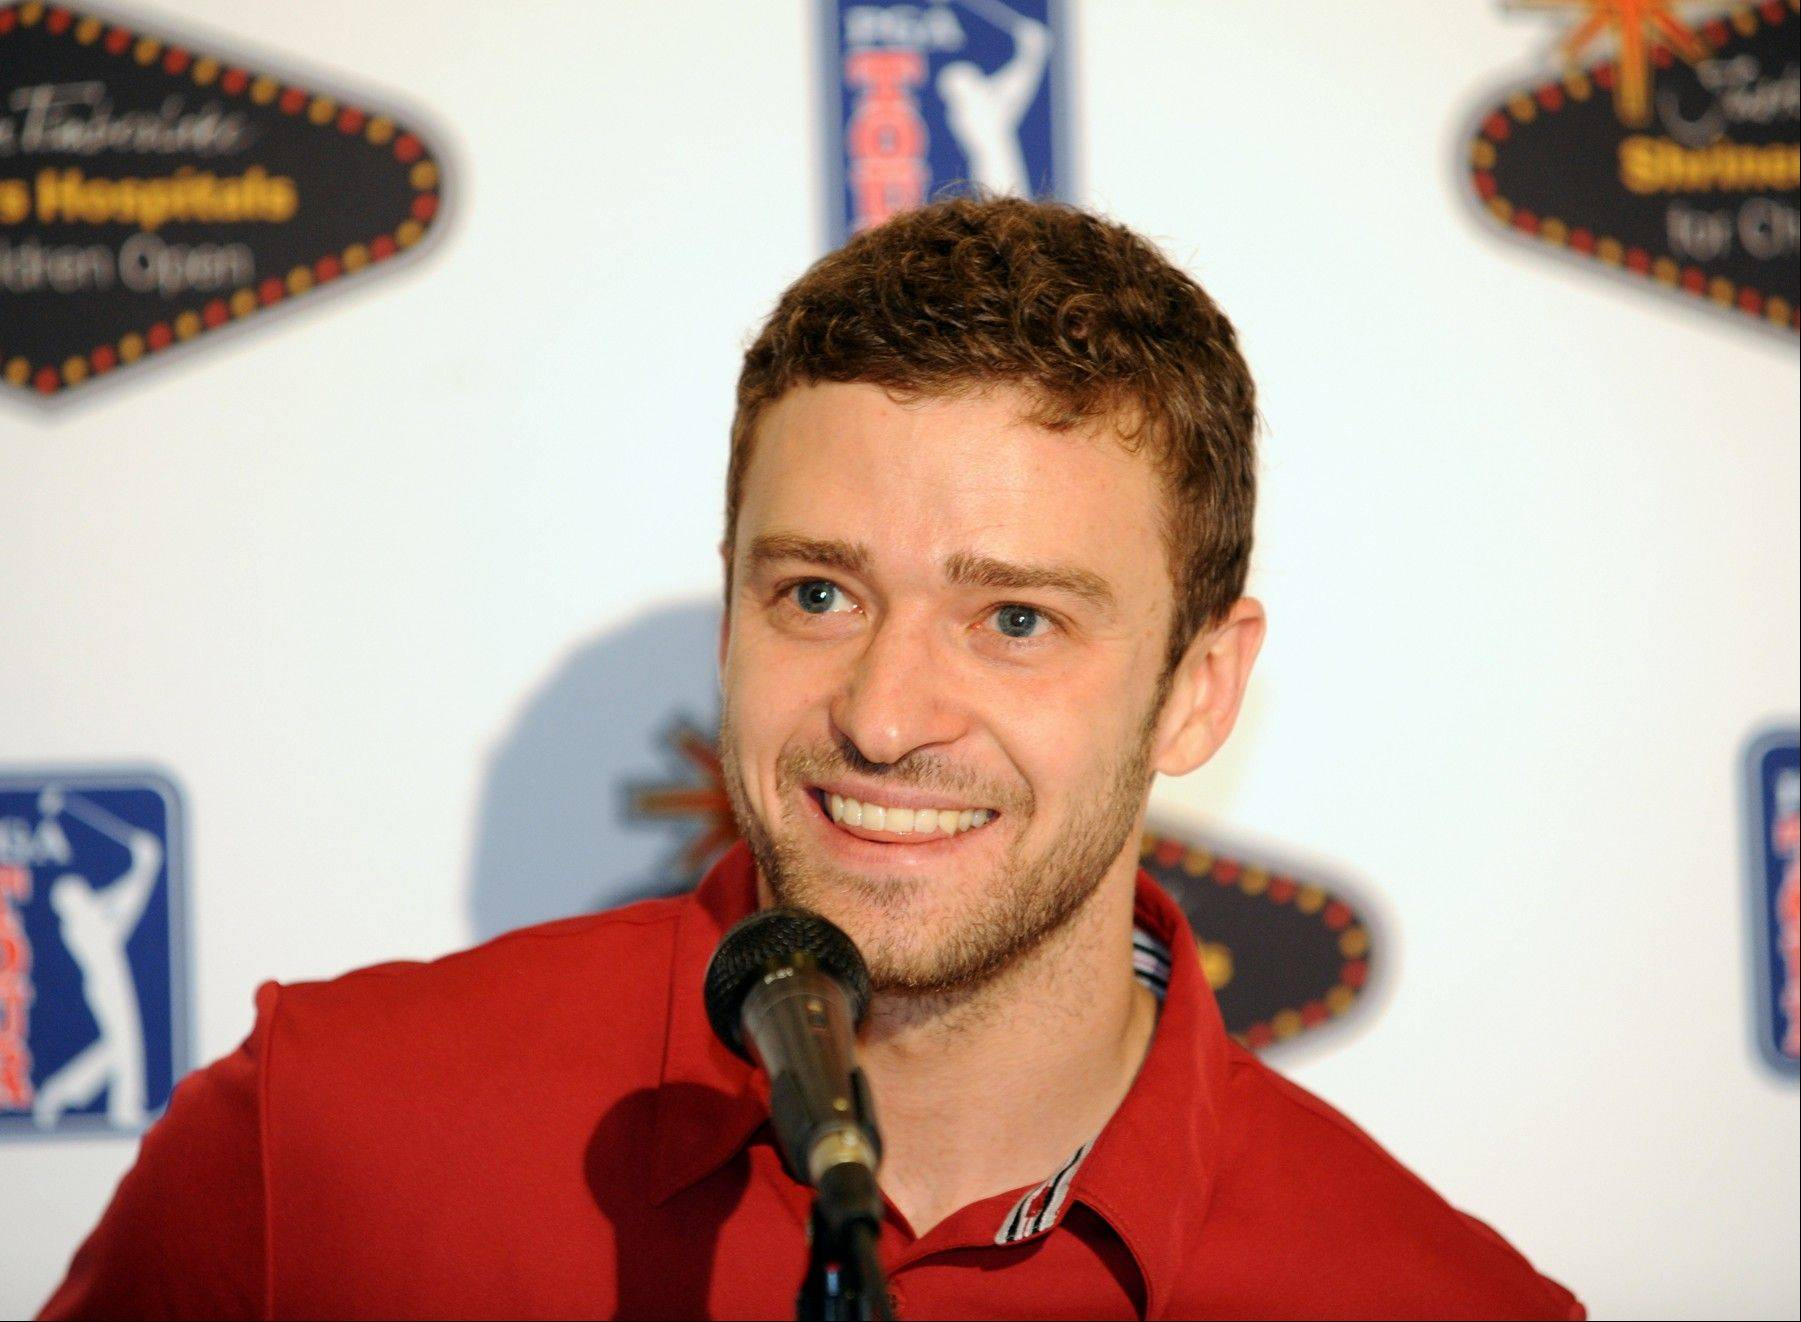 Justin Timberlake has been appointed the U.S. Team Ambassador for the 2012 Ryder Cup. The singer/actor/business icon is a passionate golfer who has his own PGA Tour event, the Justin Timberlake Shriners Hospitals for Children Open in Las Vegas each fall, and also owns a course in Memphis, Tenn.